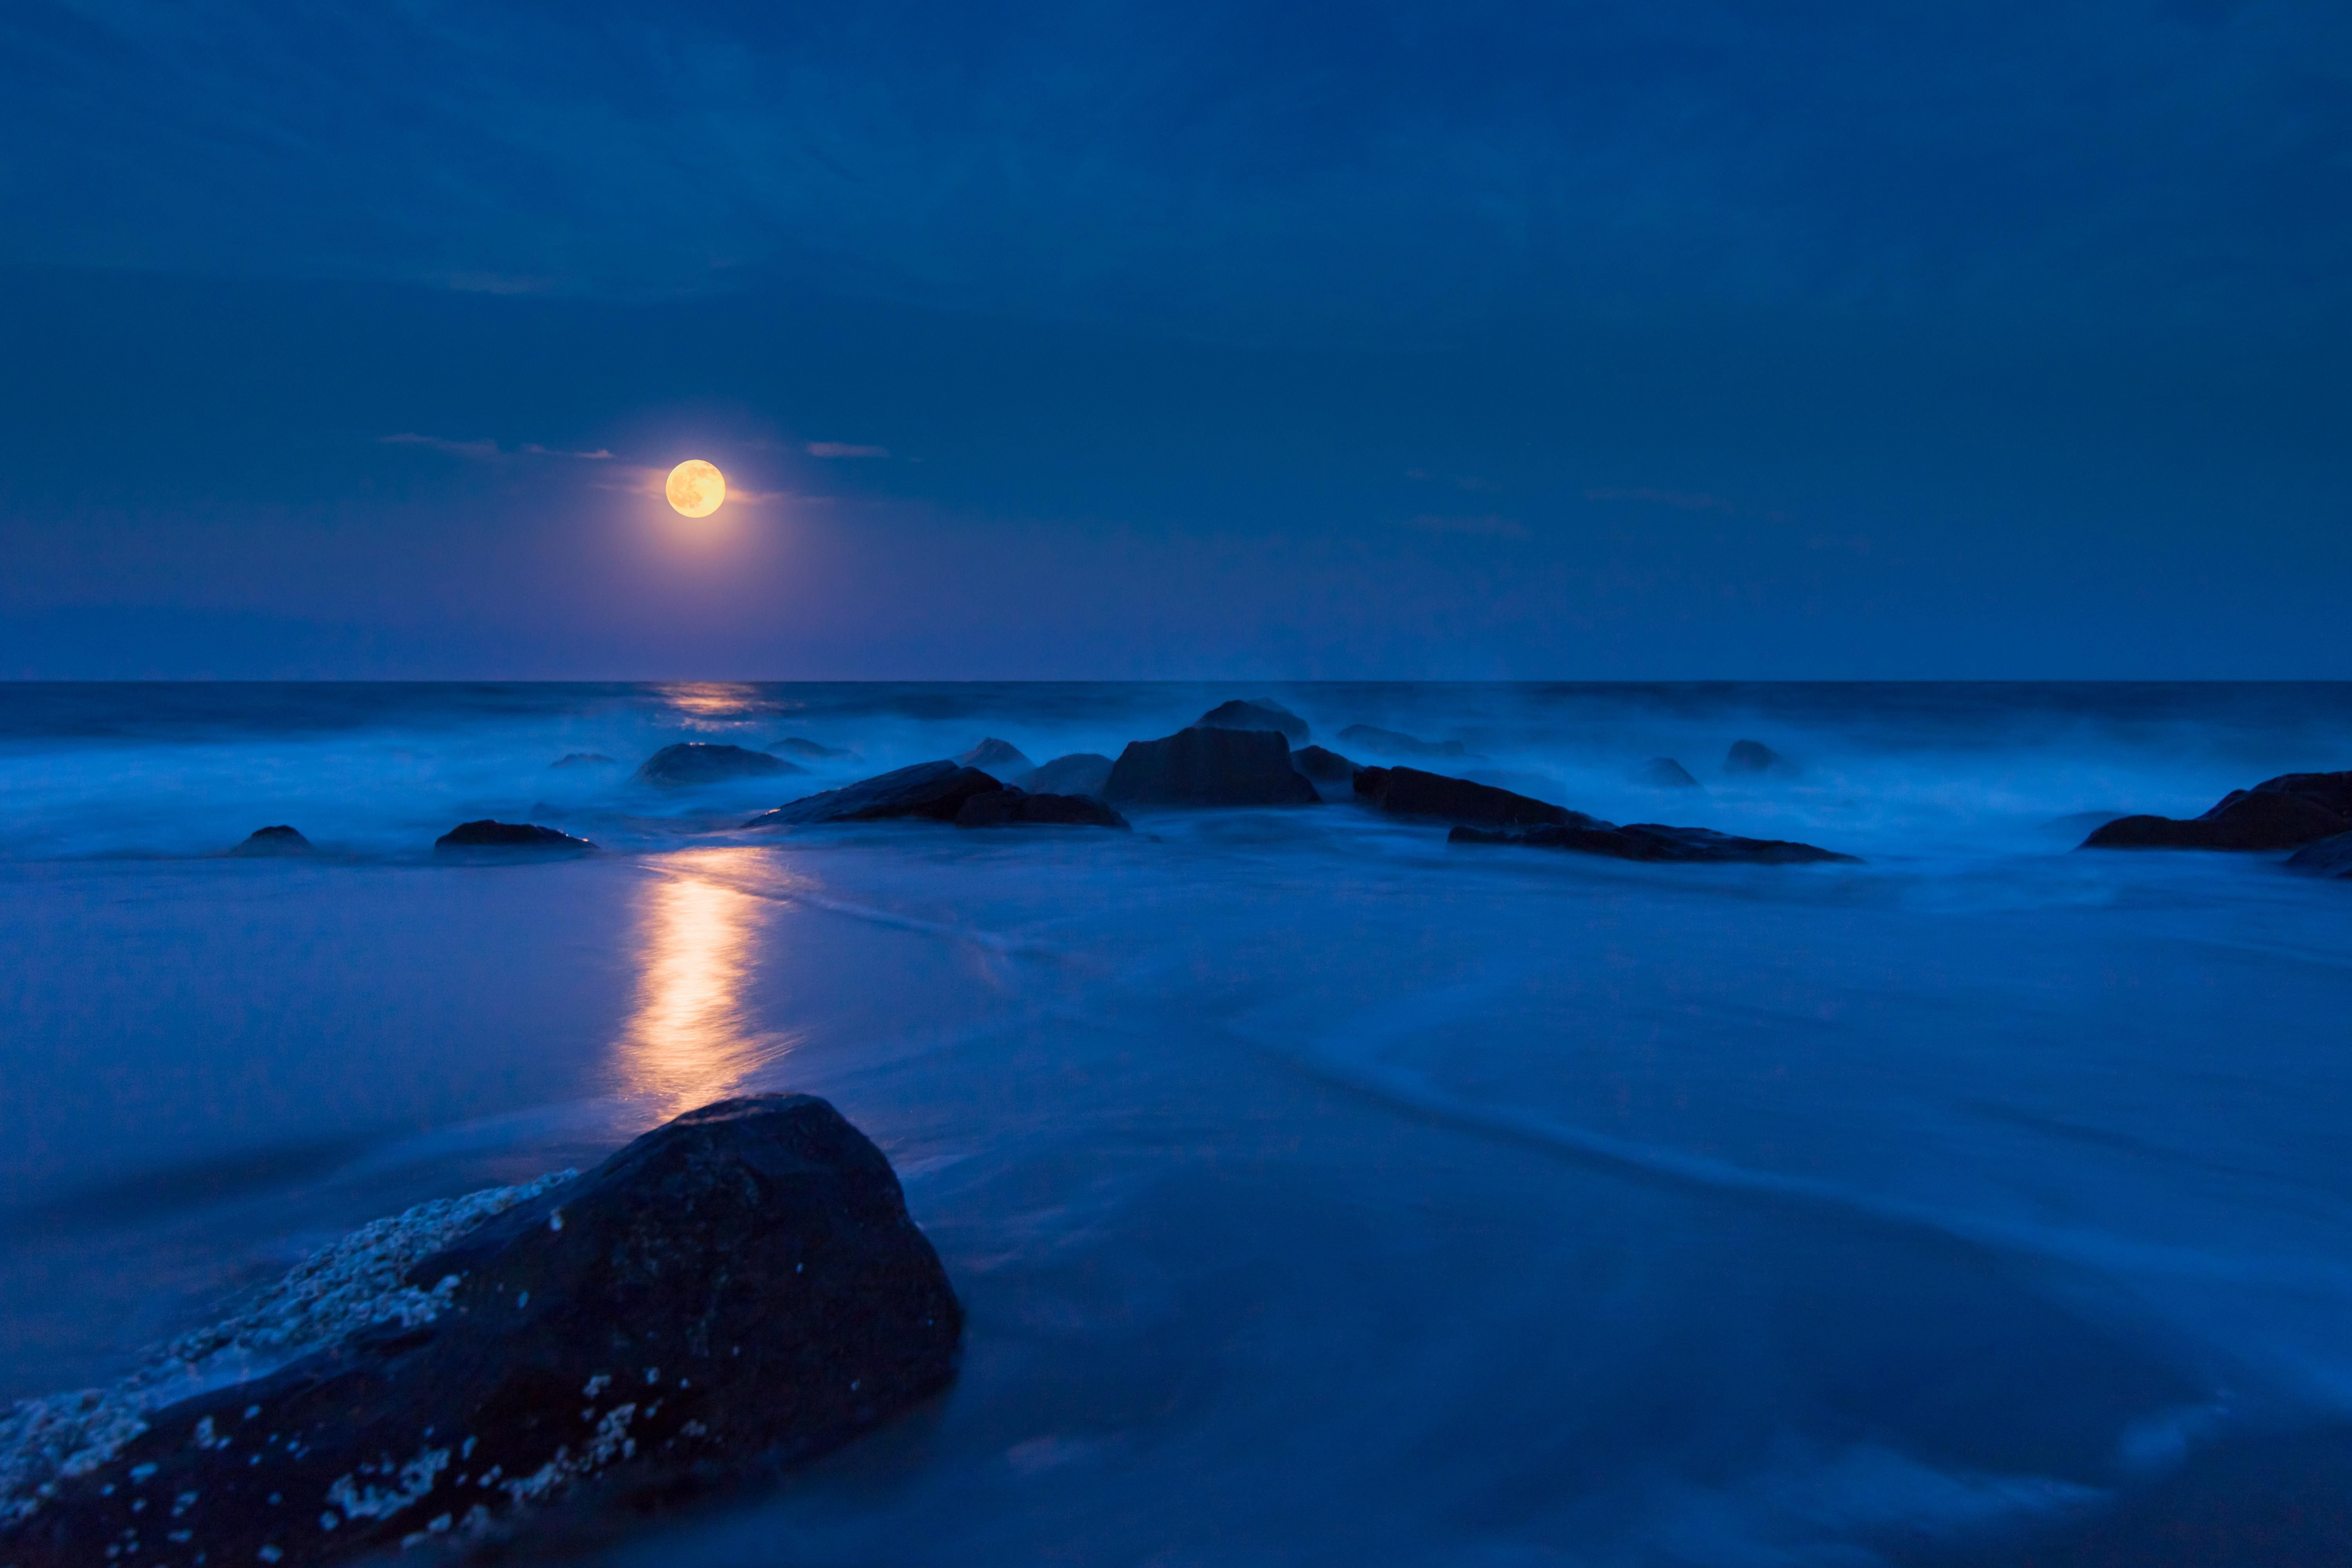 Strawberry moon at long beach island. http://ift.tt/28QvAwg. want to see more amazing #nature/ #landscape photos follow @cutephonecases